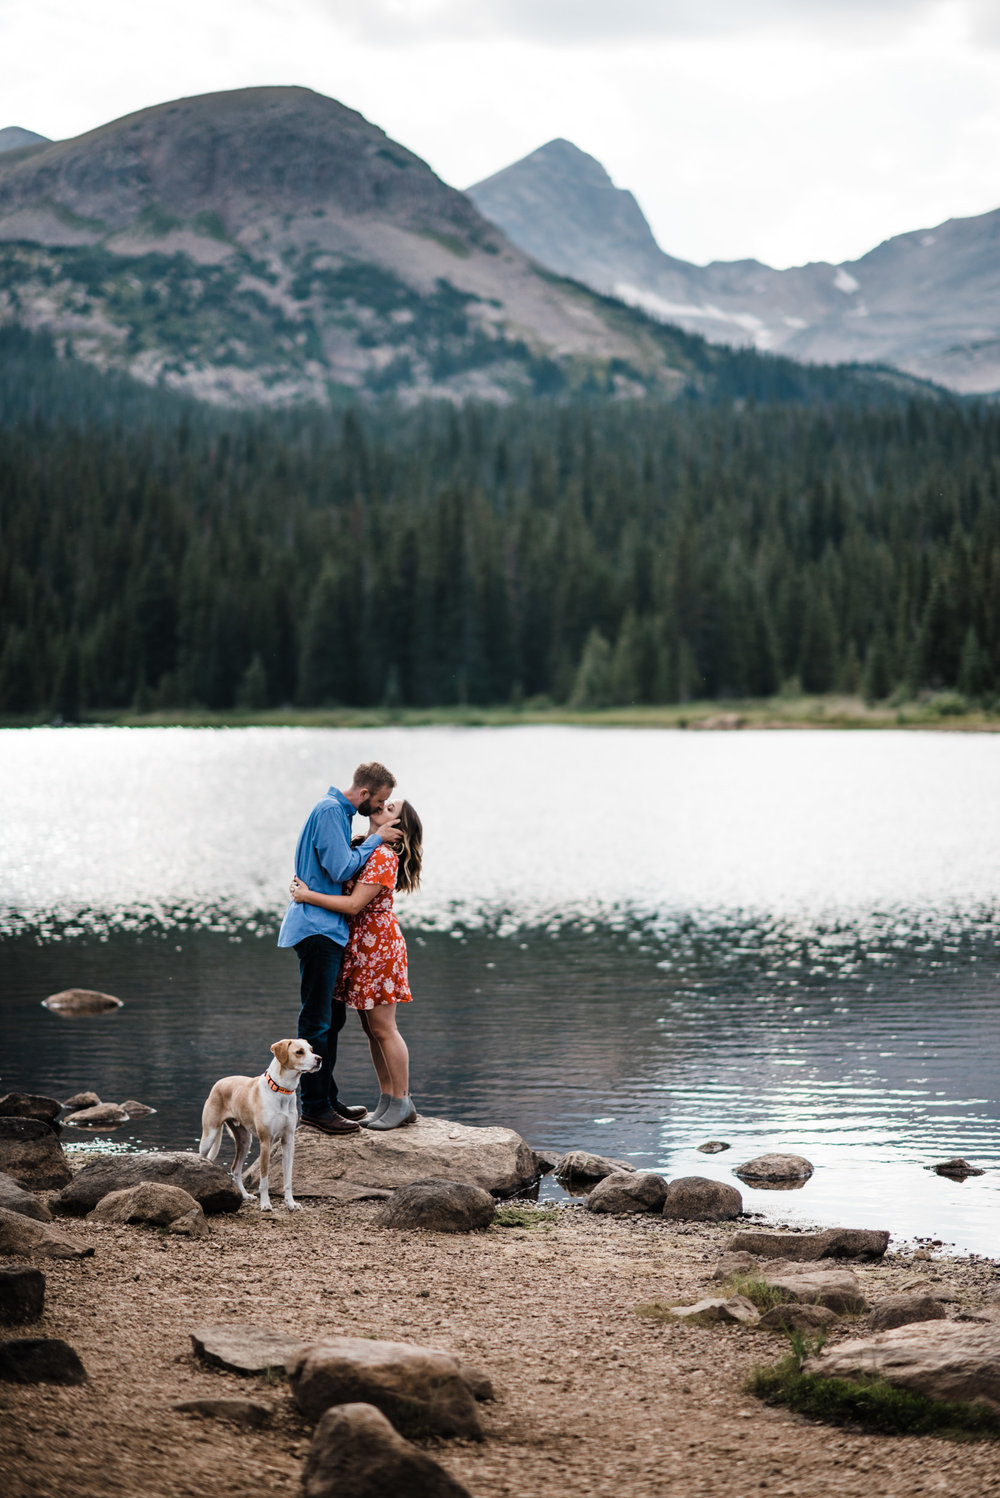 Colorado-Wedding-Engagment-Mountain-Photographer (1).jpg